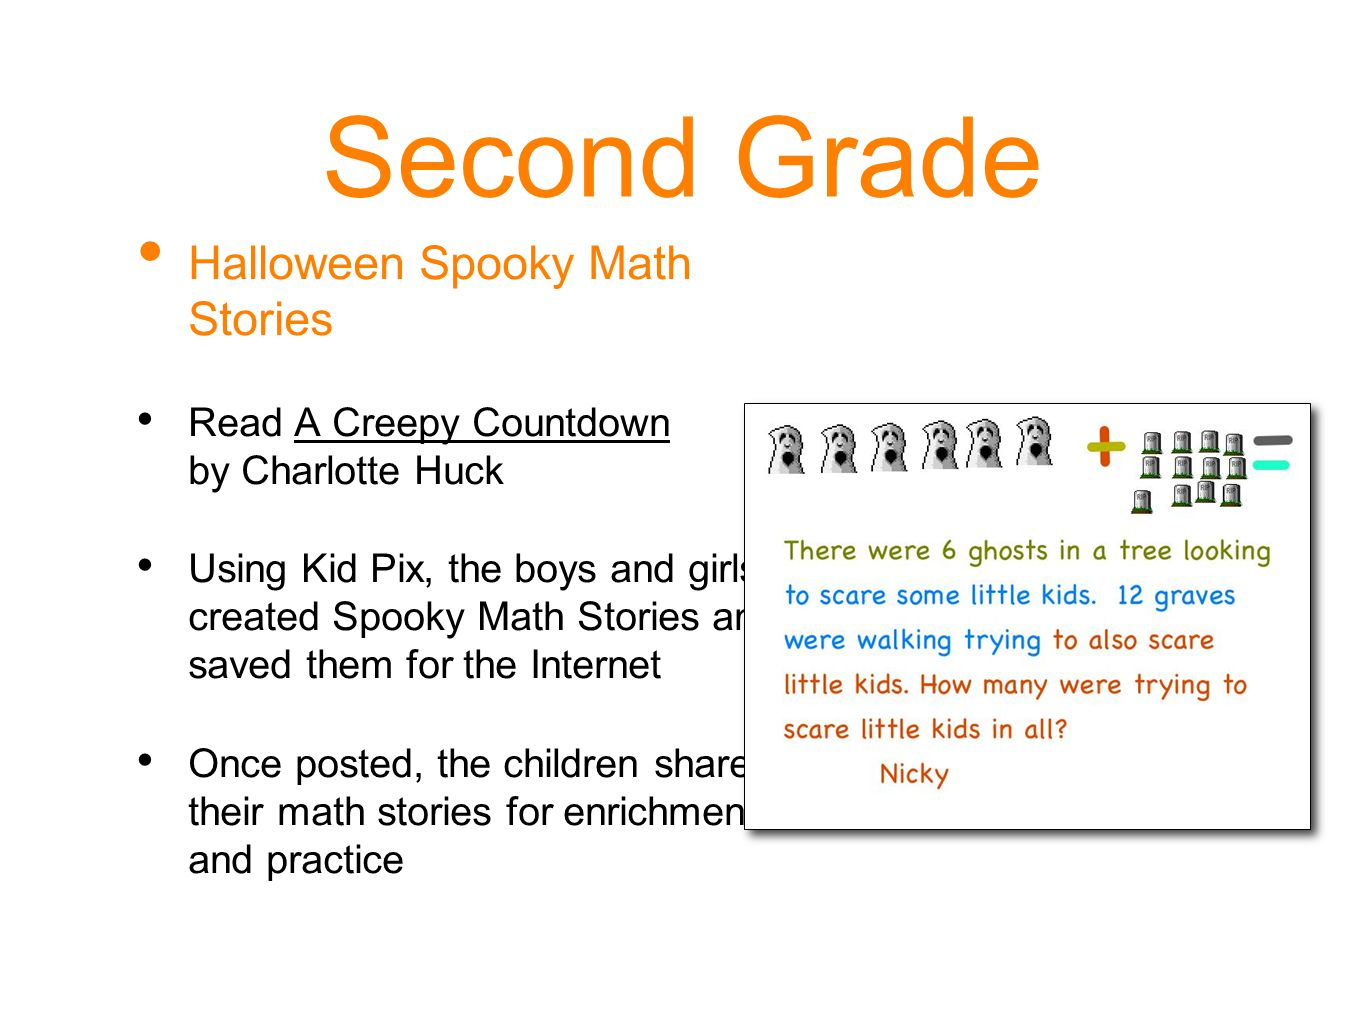 Second Grade Halloween Spooky Math Stories